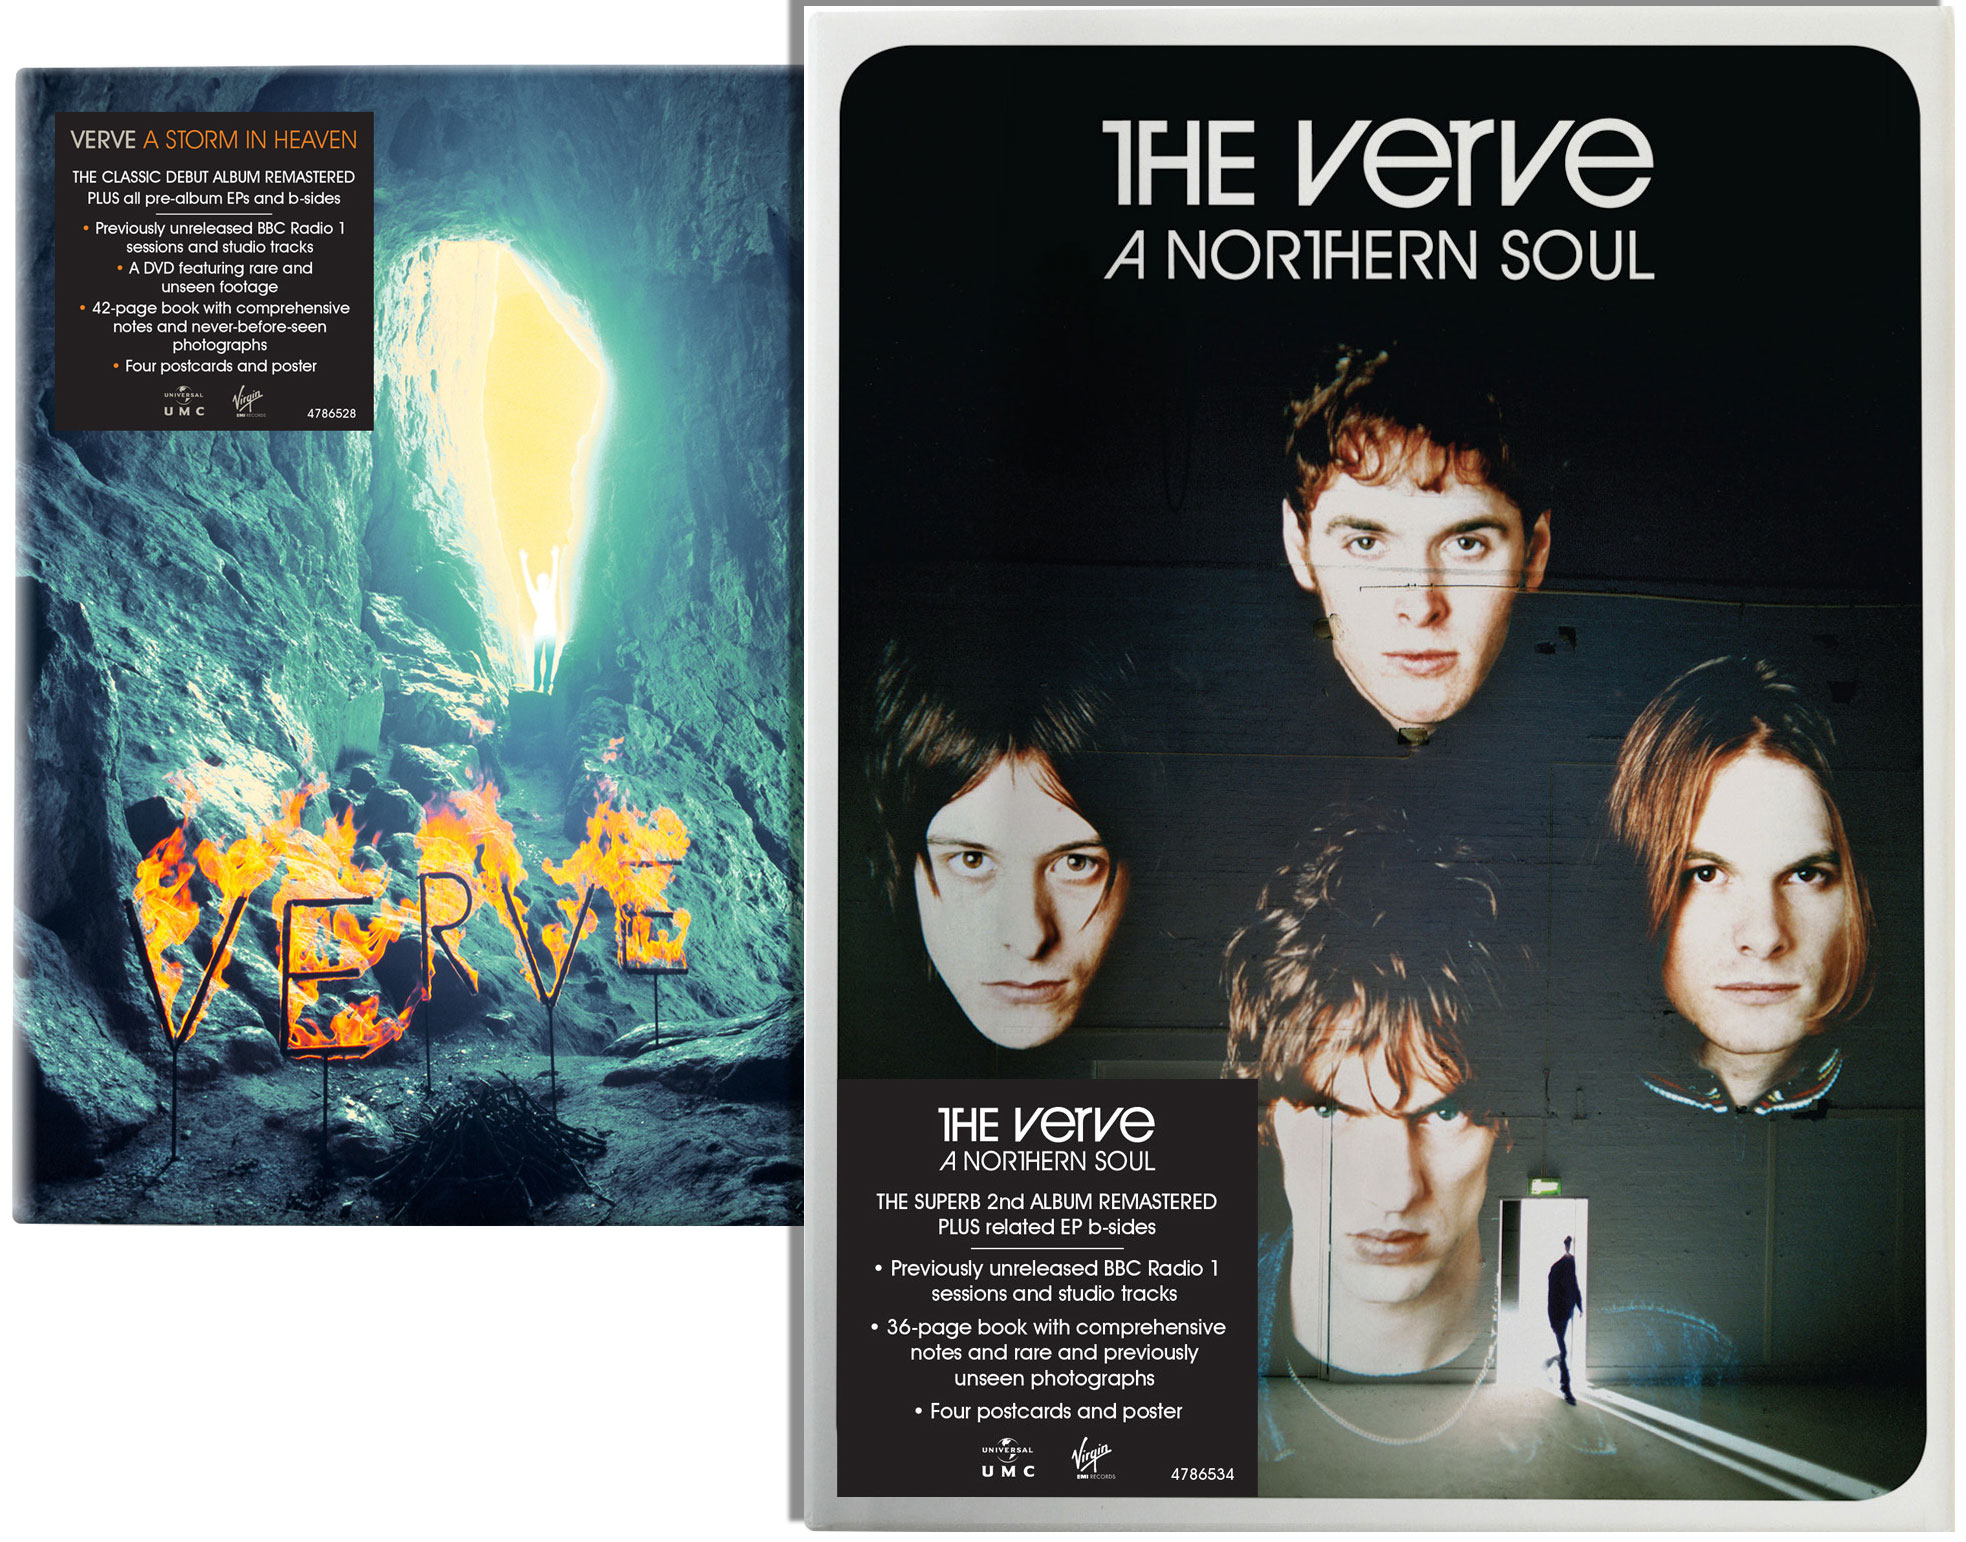 The Verve / A Northern Soul and A Storm in Heaven super deluxe edition box sets